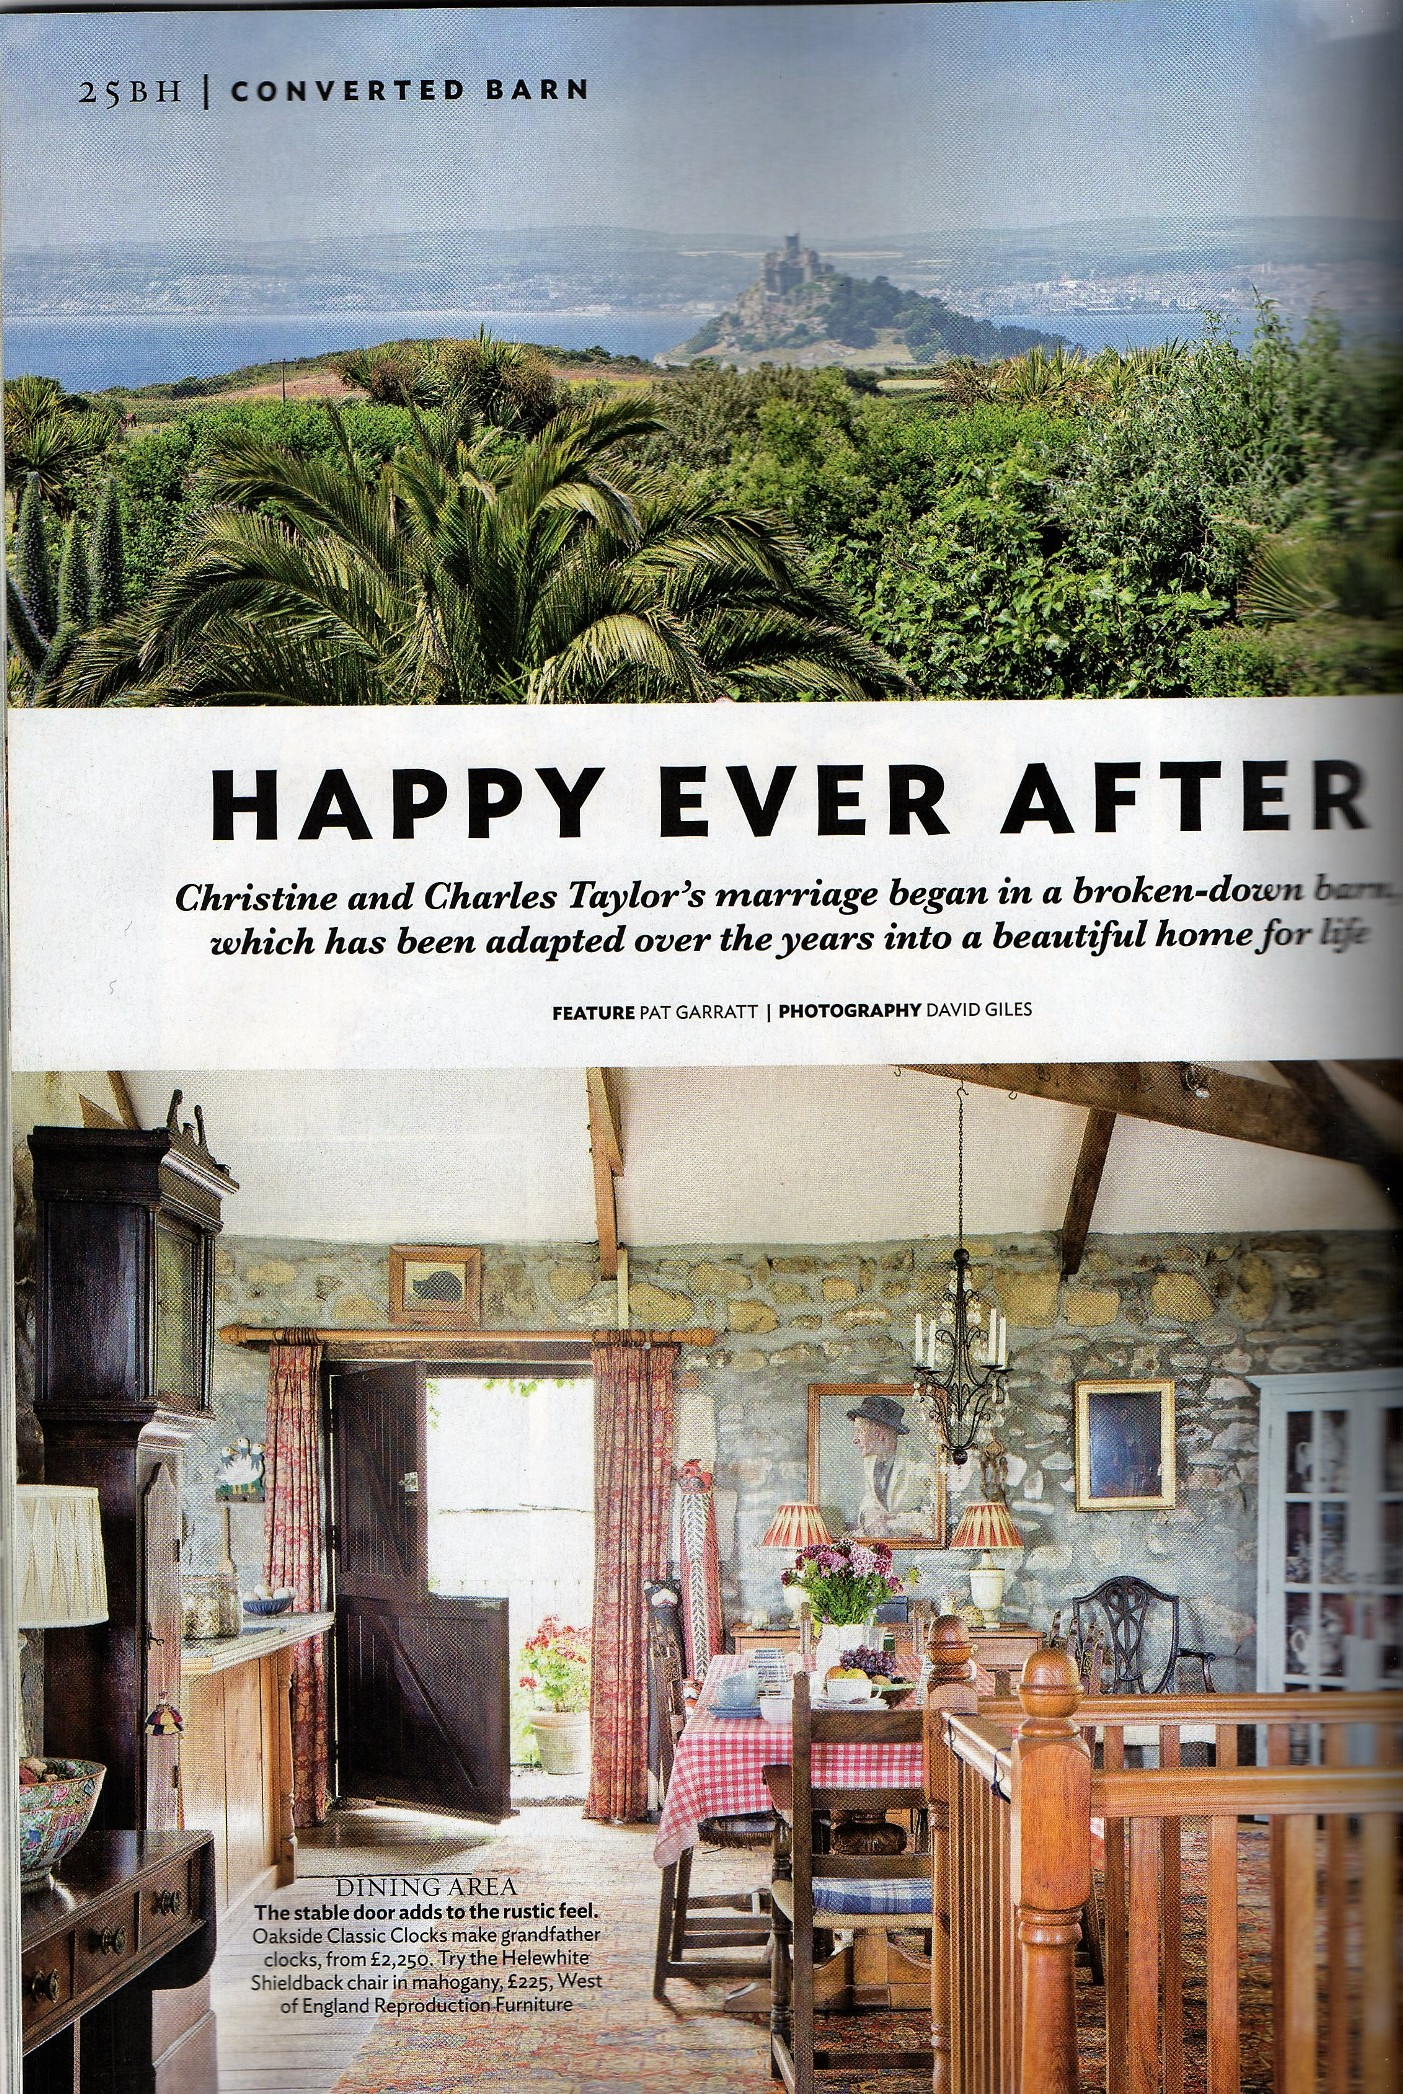 Ednovean Farm magazine article in 25 Beautiful Homes